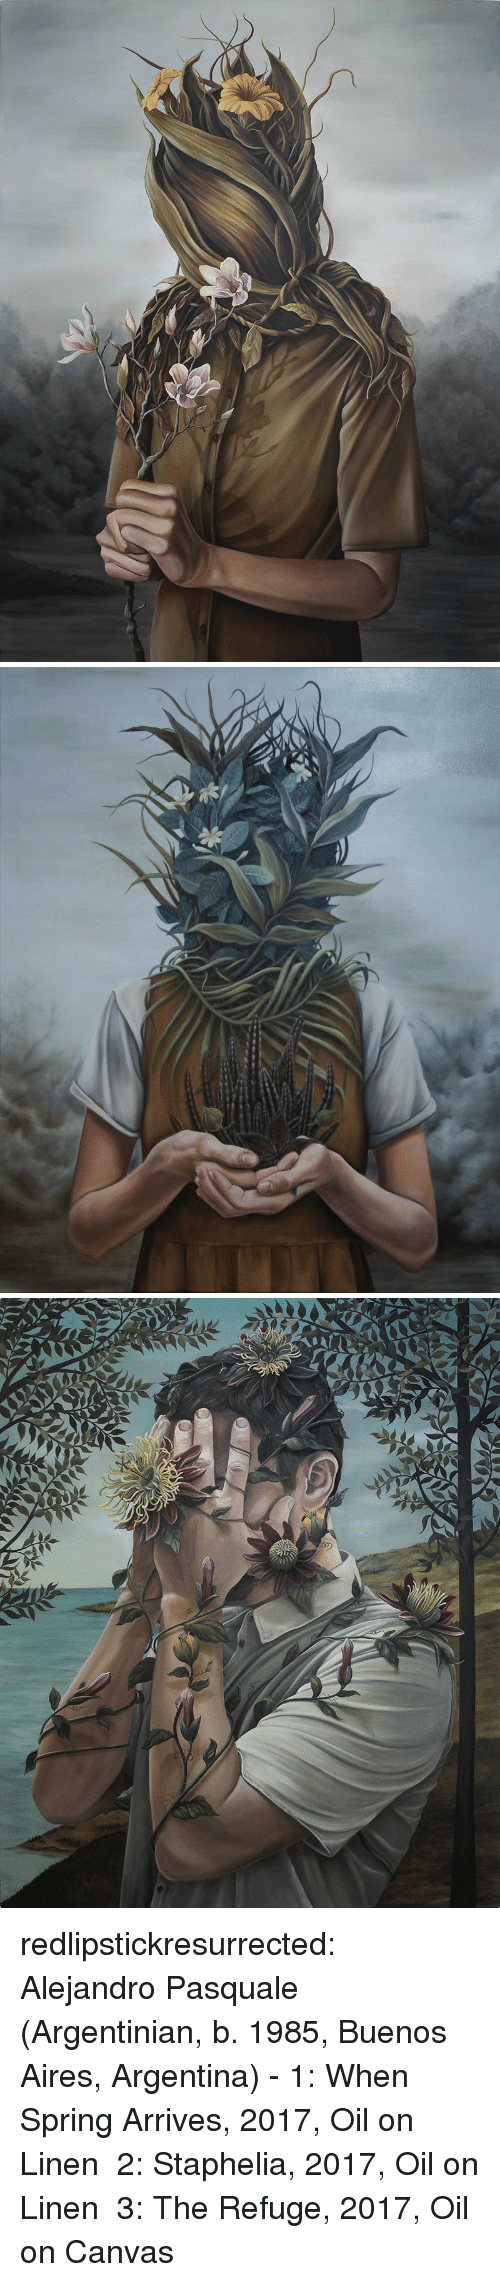 aires: redlipstickresurrected:  Alejandro Pasquale (Argentinian, b. 1985, Buenos Aires, Argentina) - 1: When Spring Arrives, 2017, Oil on Linen 2:Staphelia, 2017, Oil on Linen 3: The Refuge, 2017, Oil on Canvas